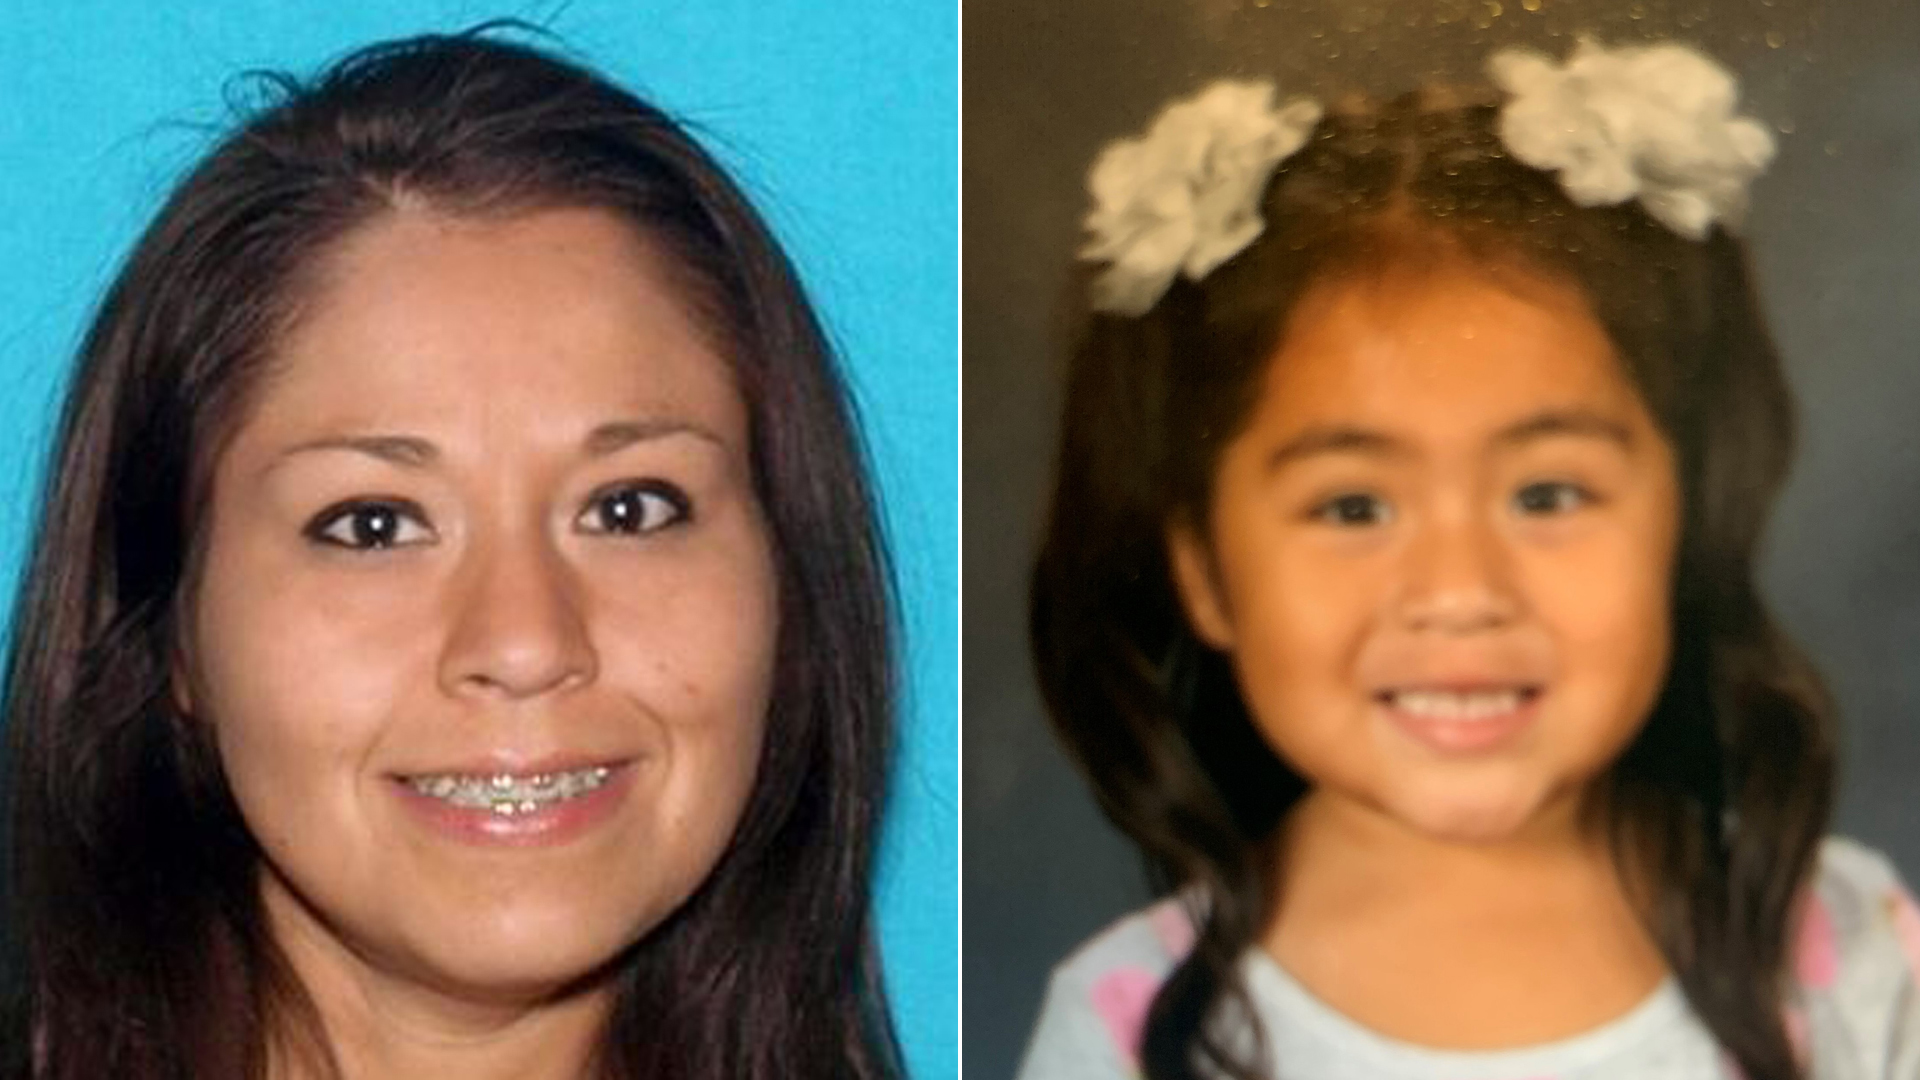 Christina Lujan, 39, left and Josephine Lujan, 3, pictured in an Amber Alert issued by the California Highway Patrol on Dec. 27, 2019.